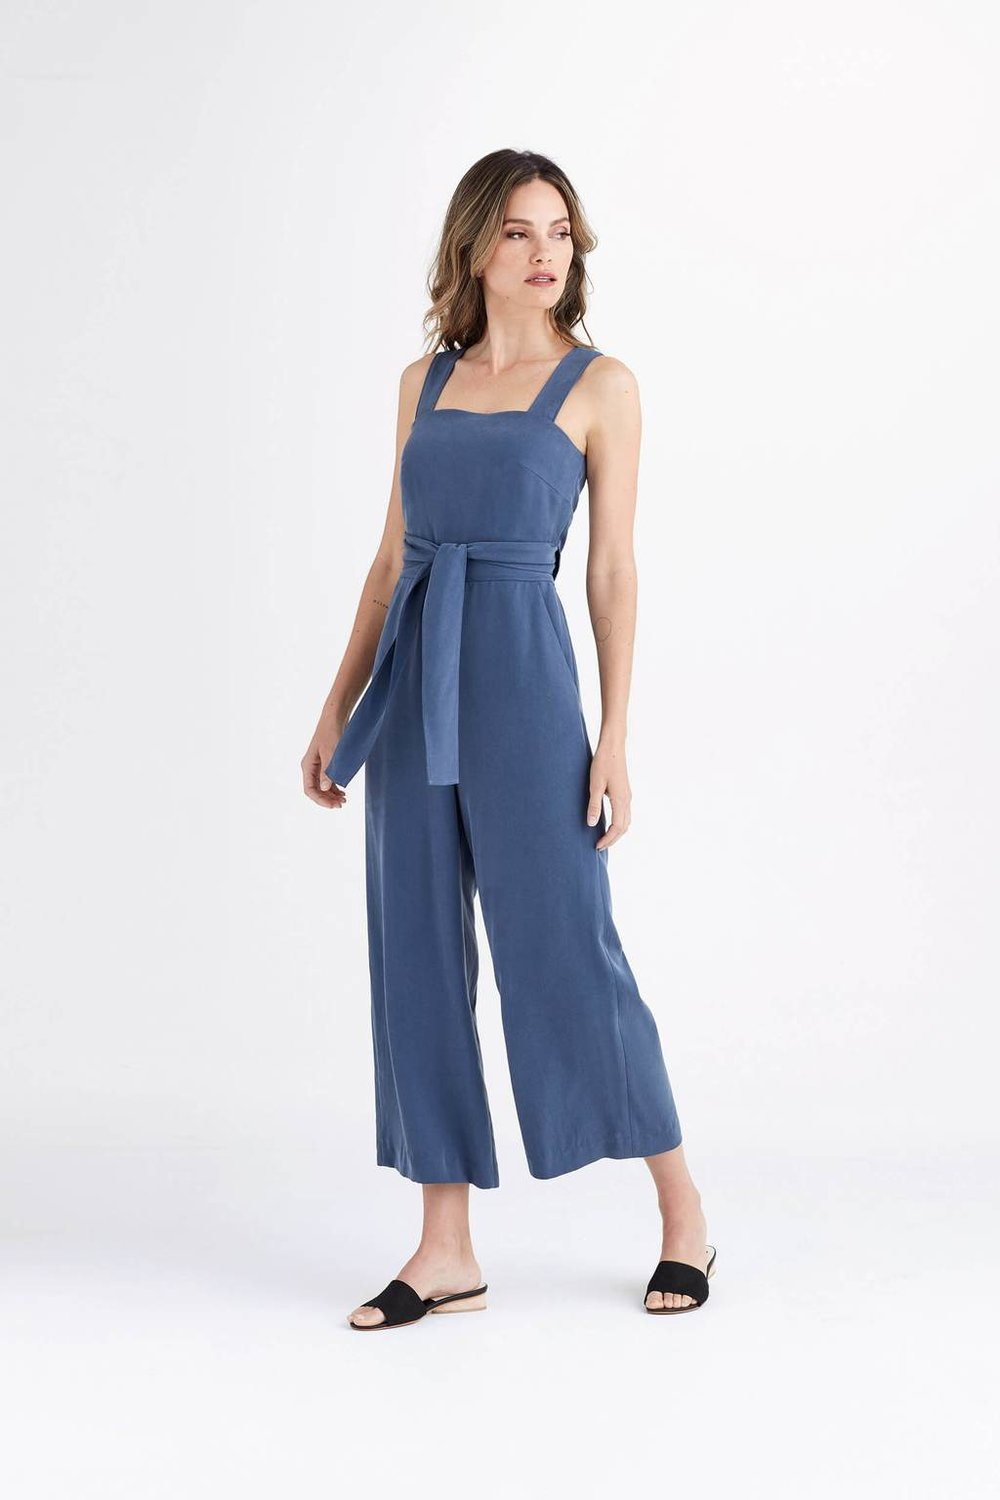 Vetta Capsule - Vetta is all about creating mini capsule wardrobes with pieces that can be mixed and matched to create a month worth of clothes. So cool! They use sustainable fabrics from responsible factories (read about their factories here) and everything down to the packaging materials is well thought out and made to have the smallest impact on the environment as possible. The pantsuit to the left? The wrap can be tied three different ways and the styling can be done an insane amount of ways. This is on my wish list right now for sure!